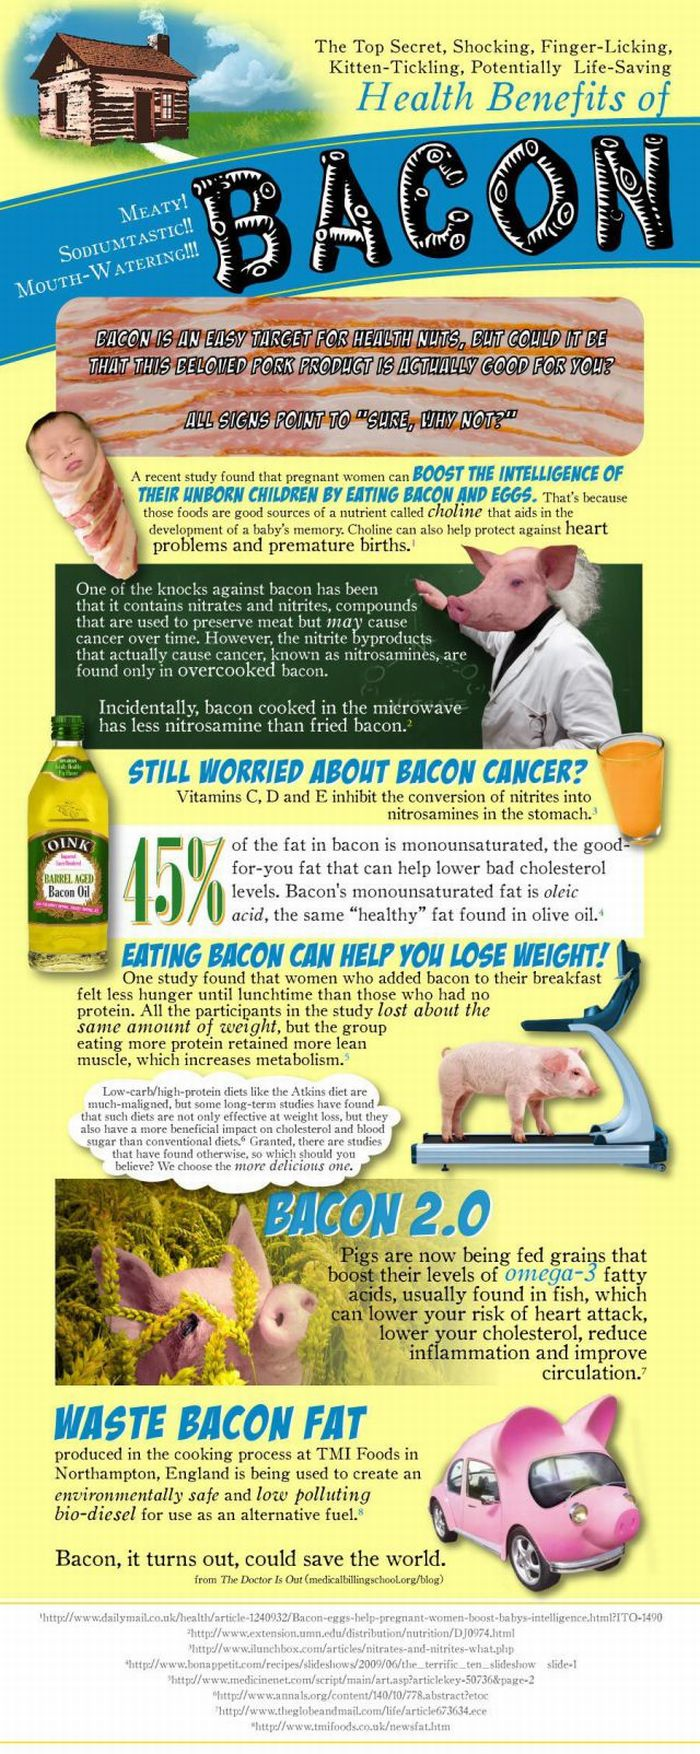 Health Benefits of Bacon (infographic)